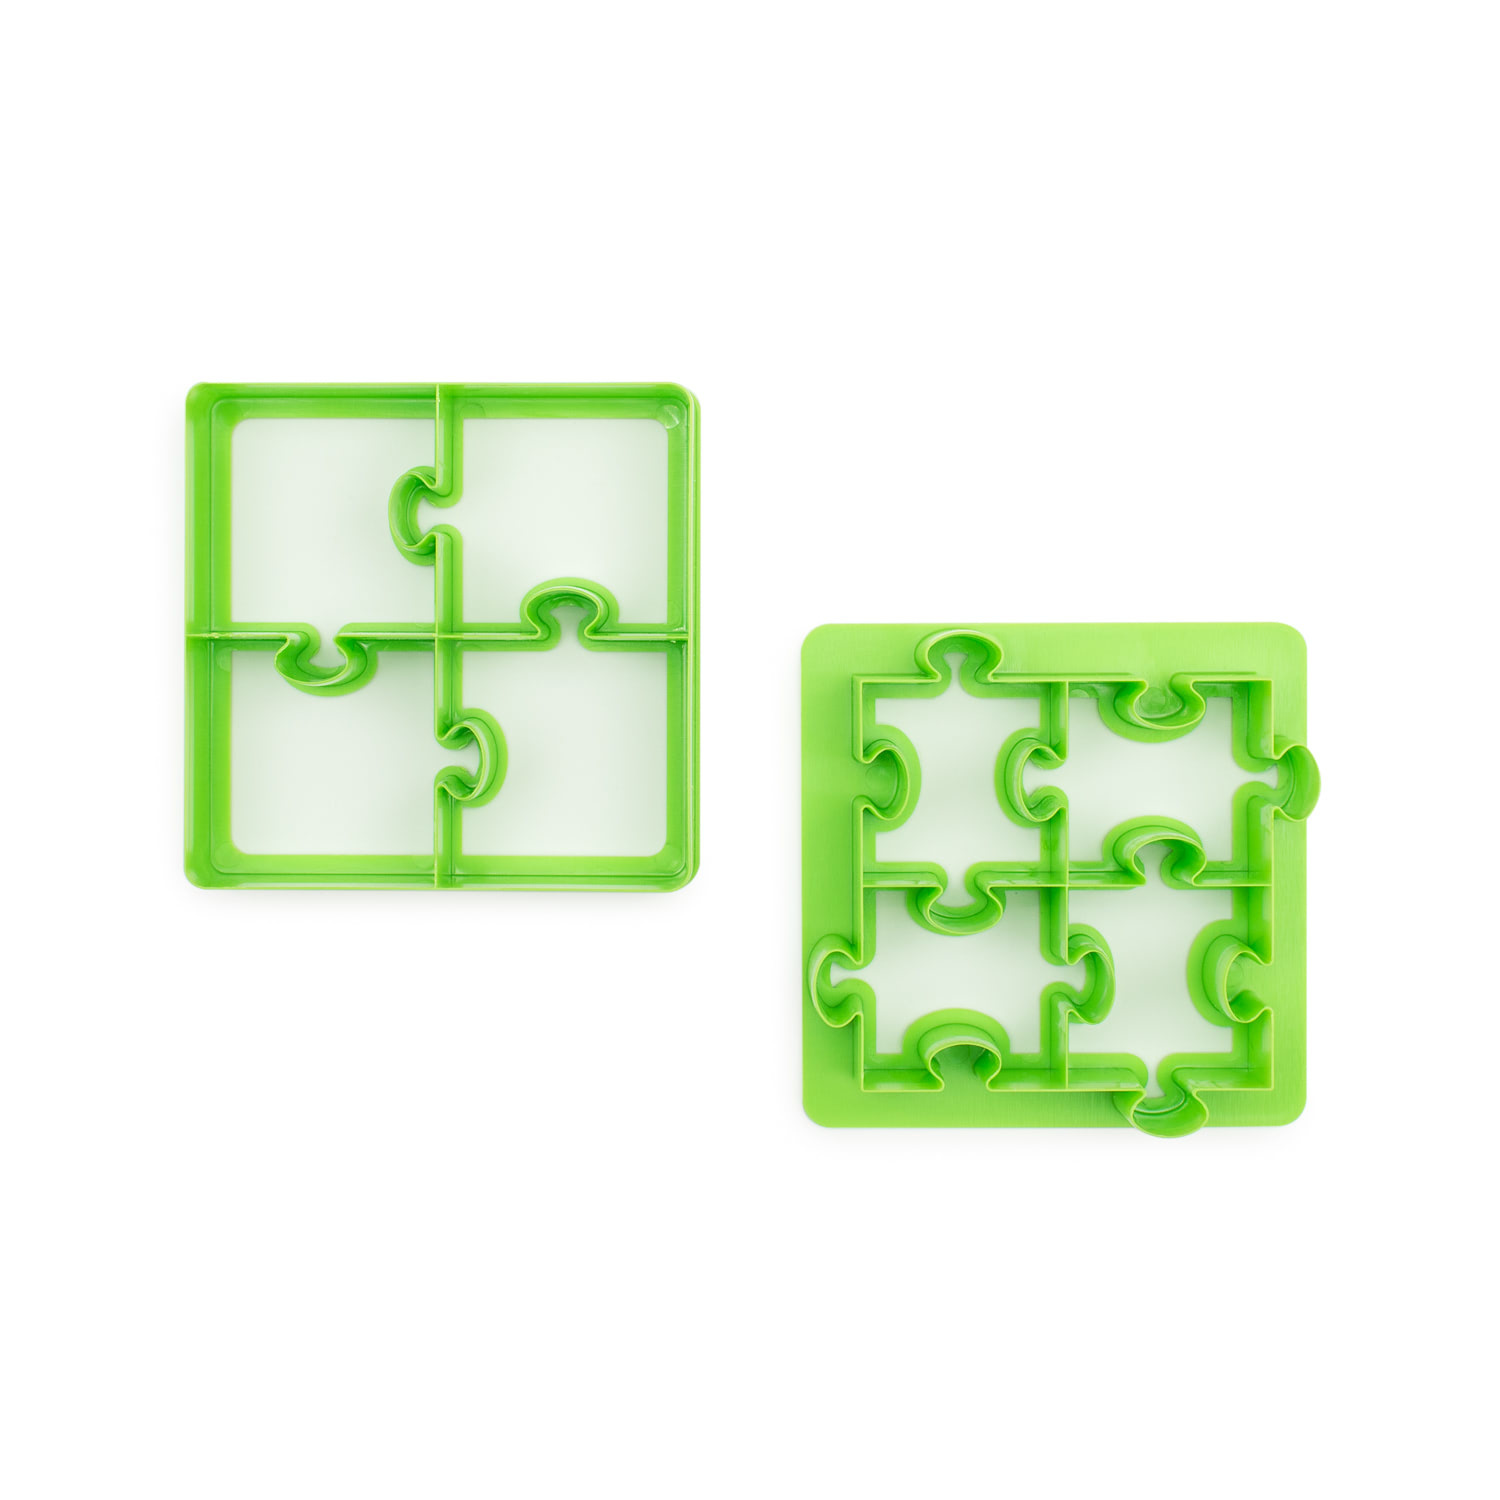 Lunch Punch Sandwich Cutters - Puzzel-1